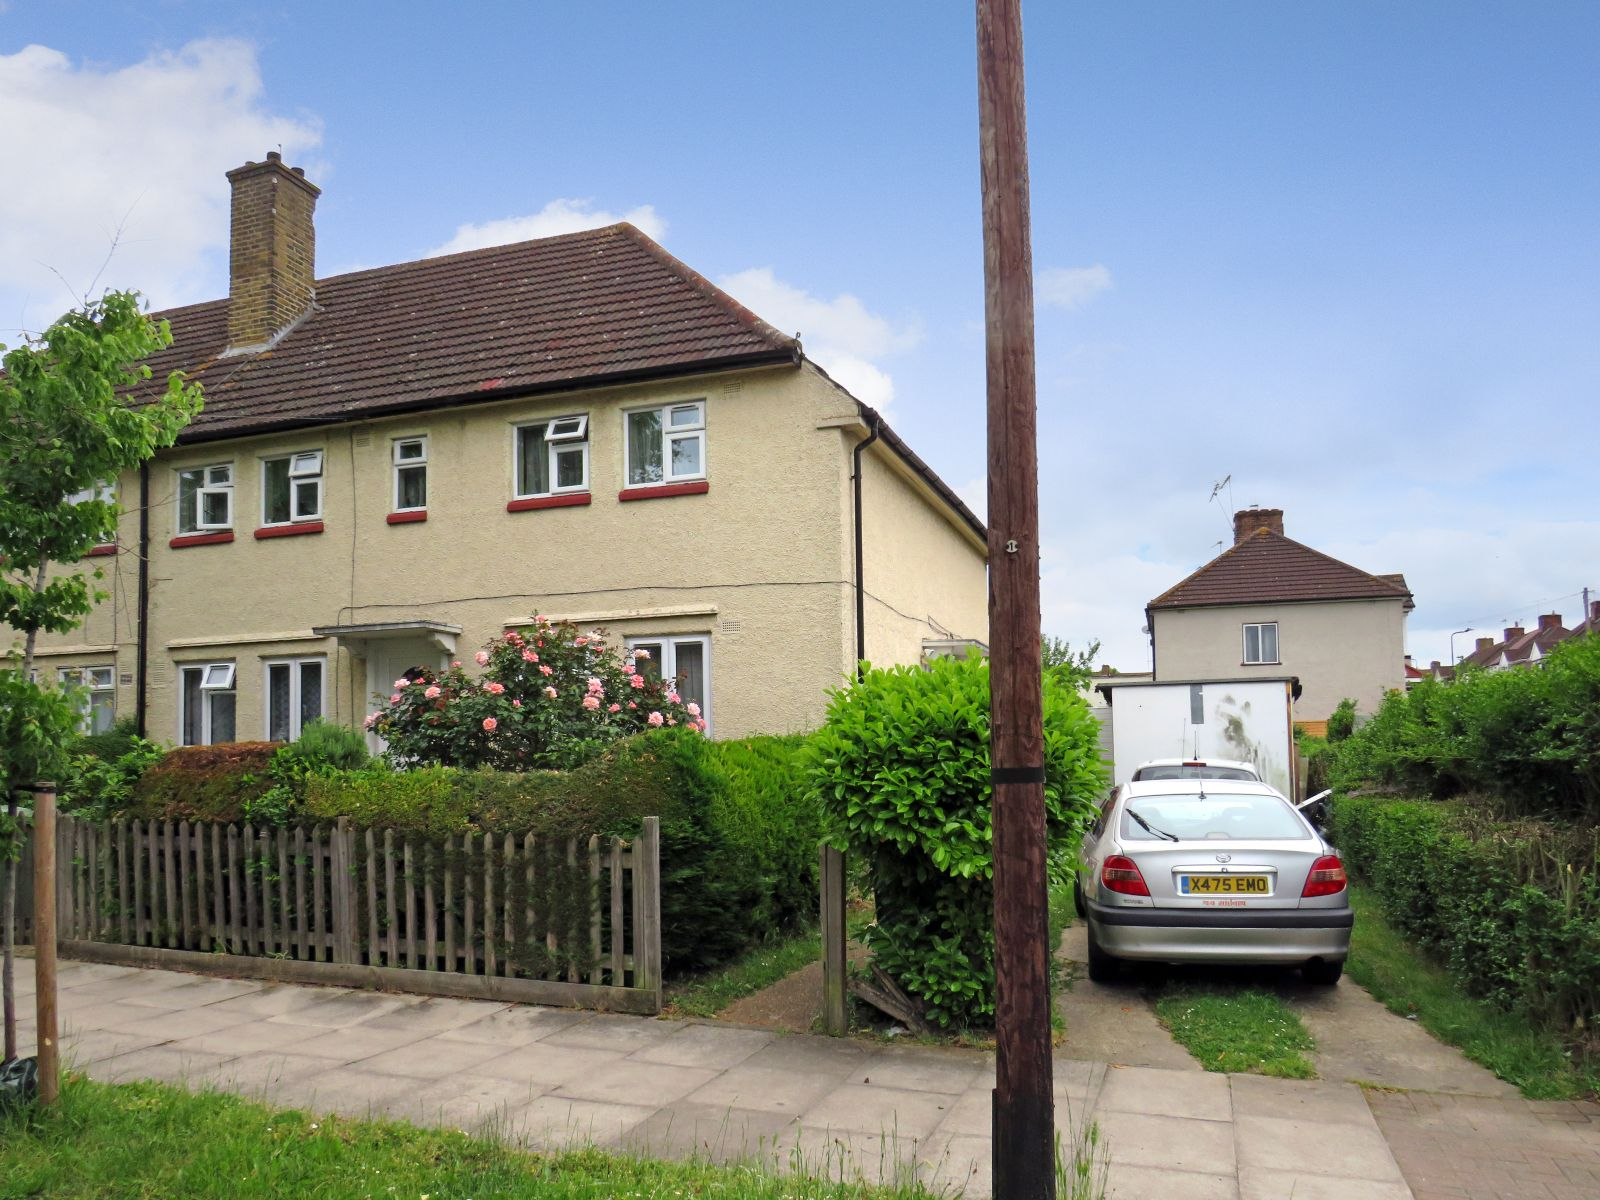 Property photo 1 of 7. Hillfield Avenue, Wembley, Middlesex Ha0